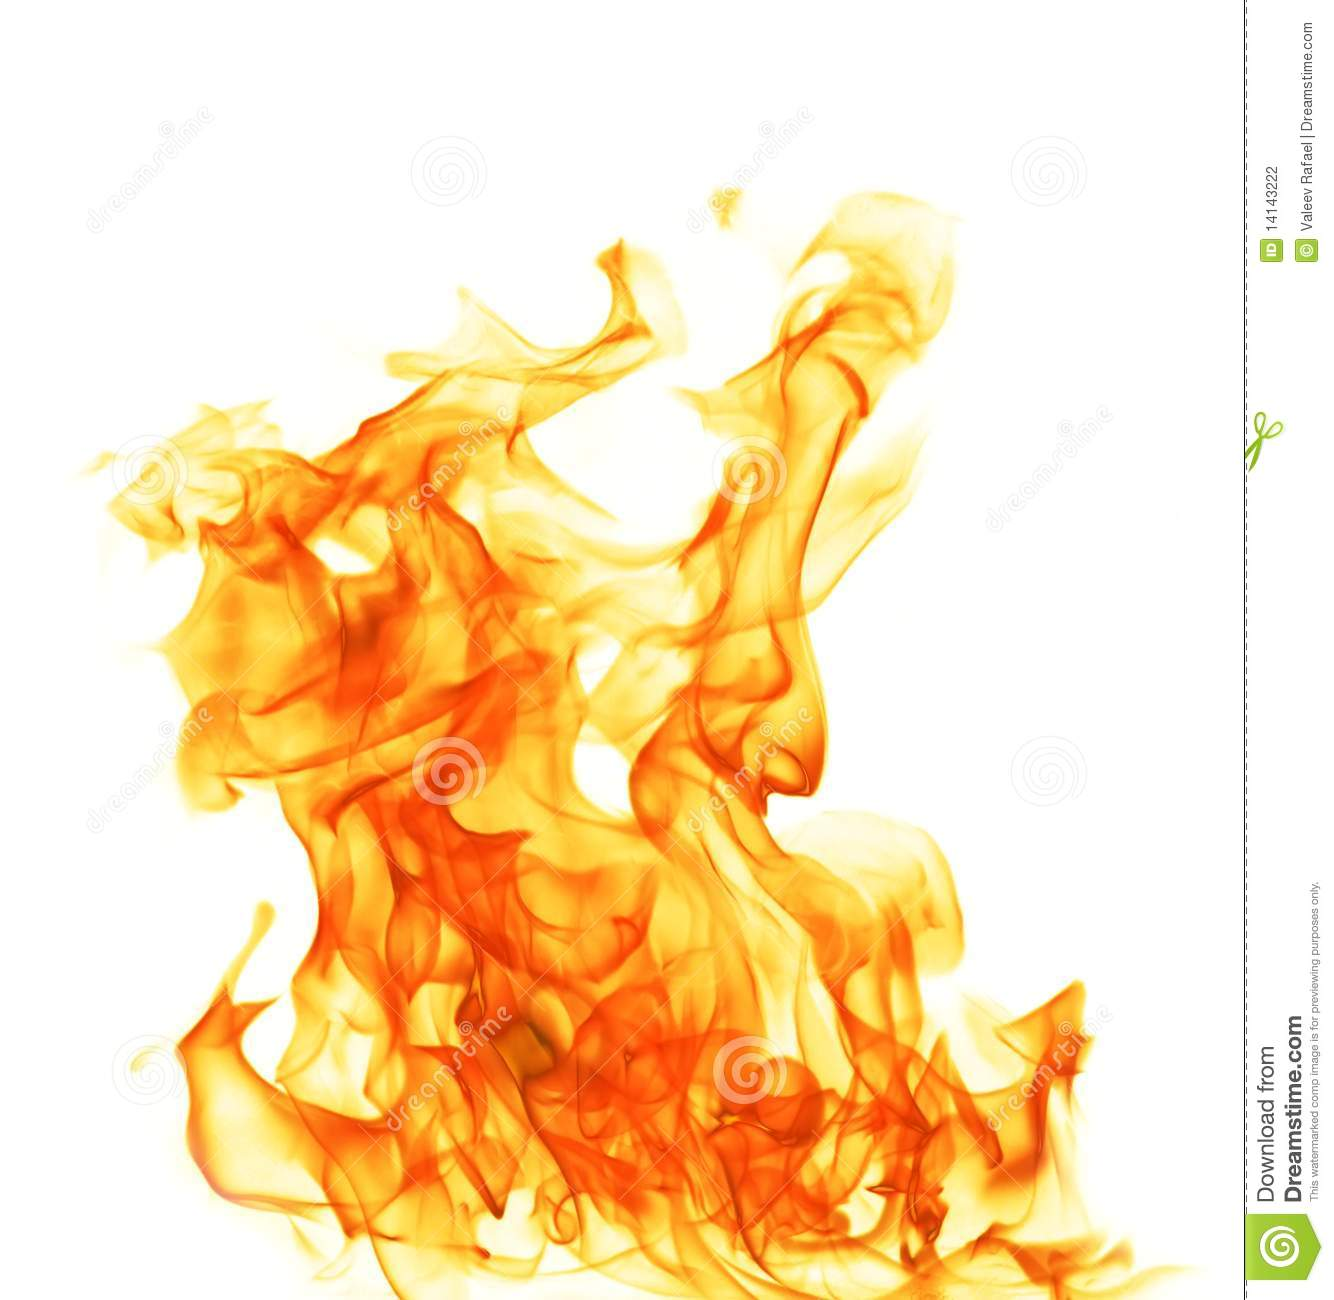 fire on white background fire isolated on white background stock photo image of 4982